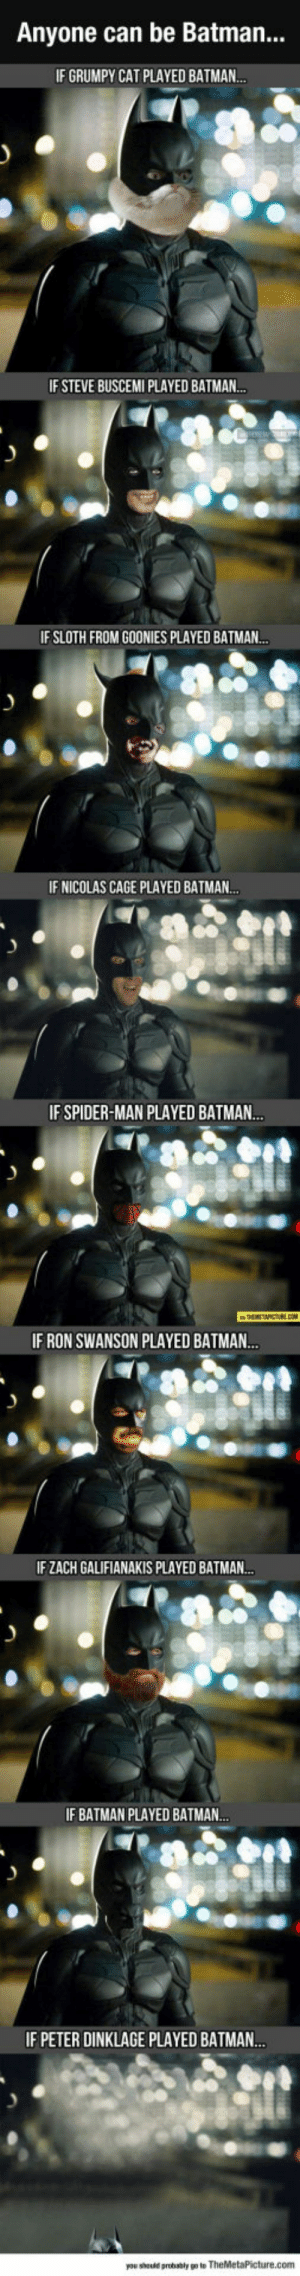 lolzandtrollz:  When Anyone Can Be Batman: Anyone can be Batman...  IF GRUMPY CAT PLAYED BATMAN..  IF STEVE BUSCEMI PLAYED BATMAN..  IF SLOTH FROM GOONIES PLAYED BATMAN..  IF NICOLAS CAGE PLAYED BATMAN..  IF SPIDER-MAN PLAYED BATMAN...  IF RON SWANSON PLAYED BATMAN..  IF ZACH GALIFIANAKIS PLAYED BATMAN..  IF BATMAN PLAYED BATMAN.  IF PETER DINKLAGE PLAYED BATMA..  you should probably po to TheMetaPicture.com lolzandtrollz:  When Anyone Can Be Batman